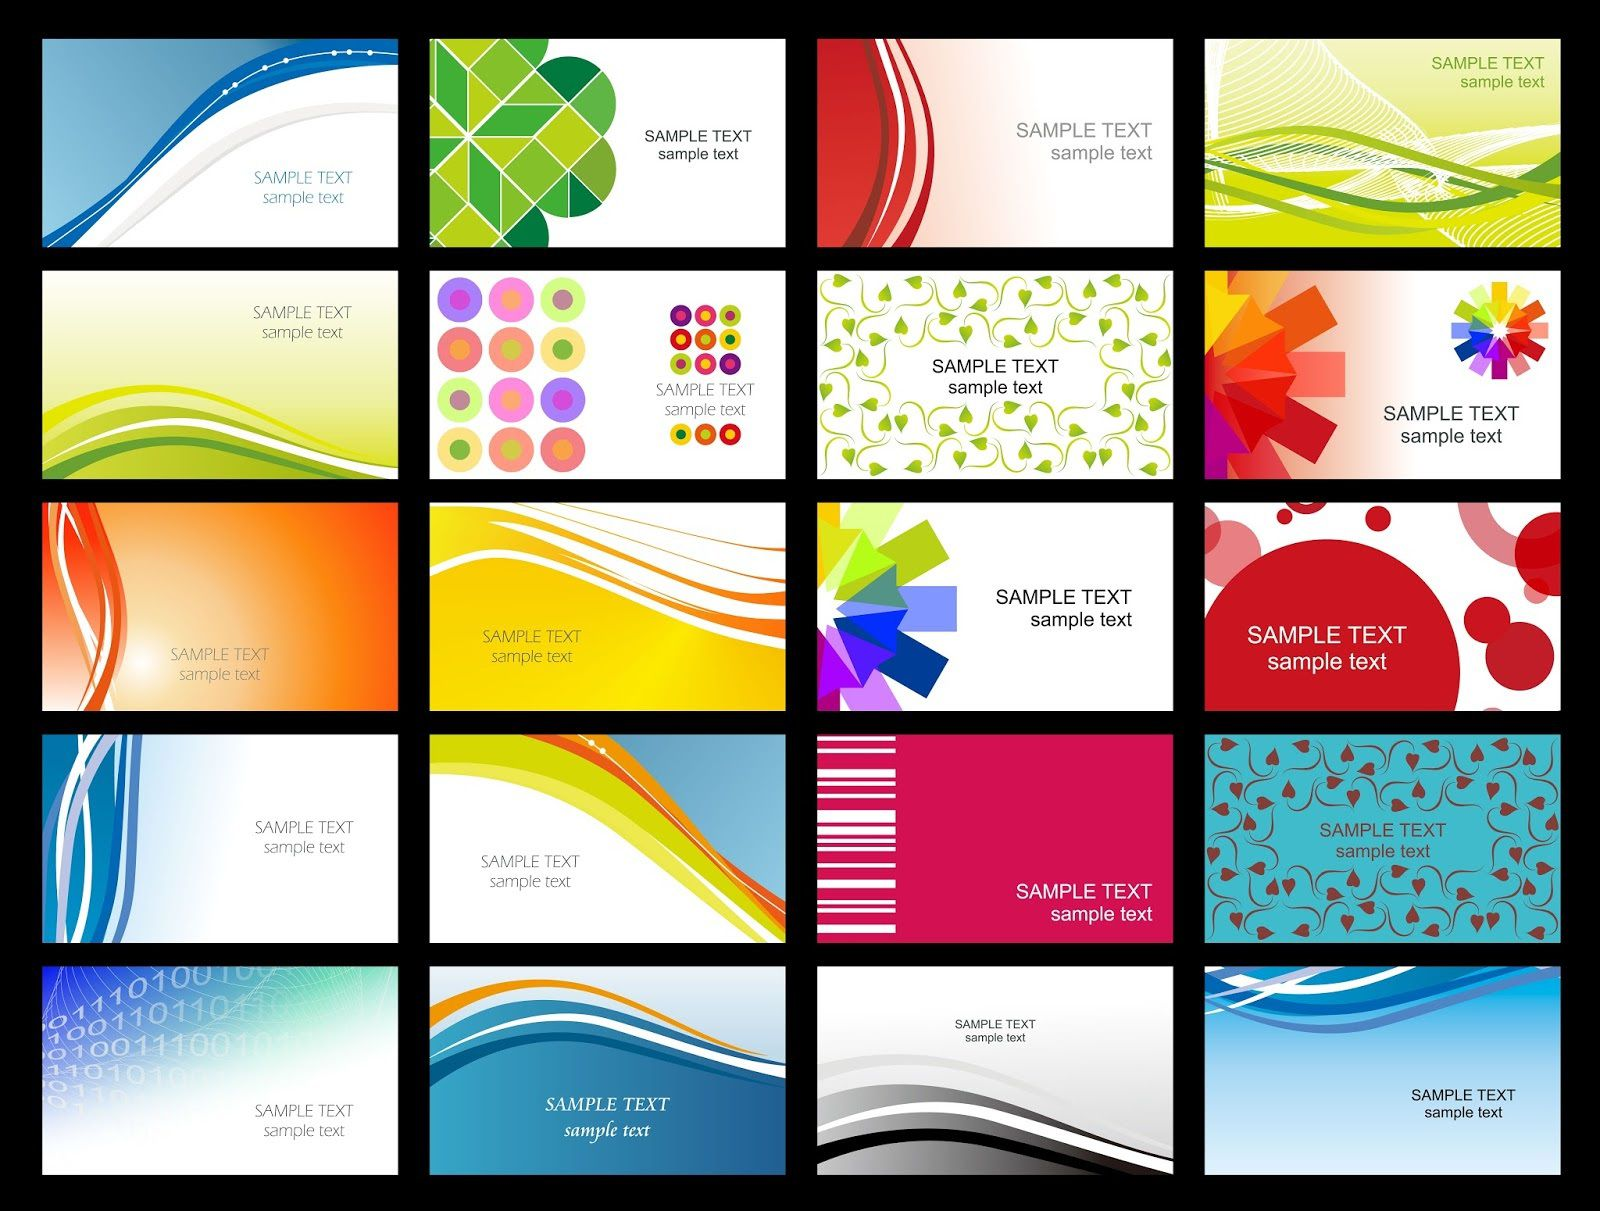 008 Wonderful Simple Busines Card Template Free Download Example  Visiting Design Psd File MinimalistFull